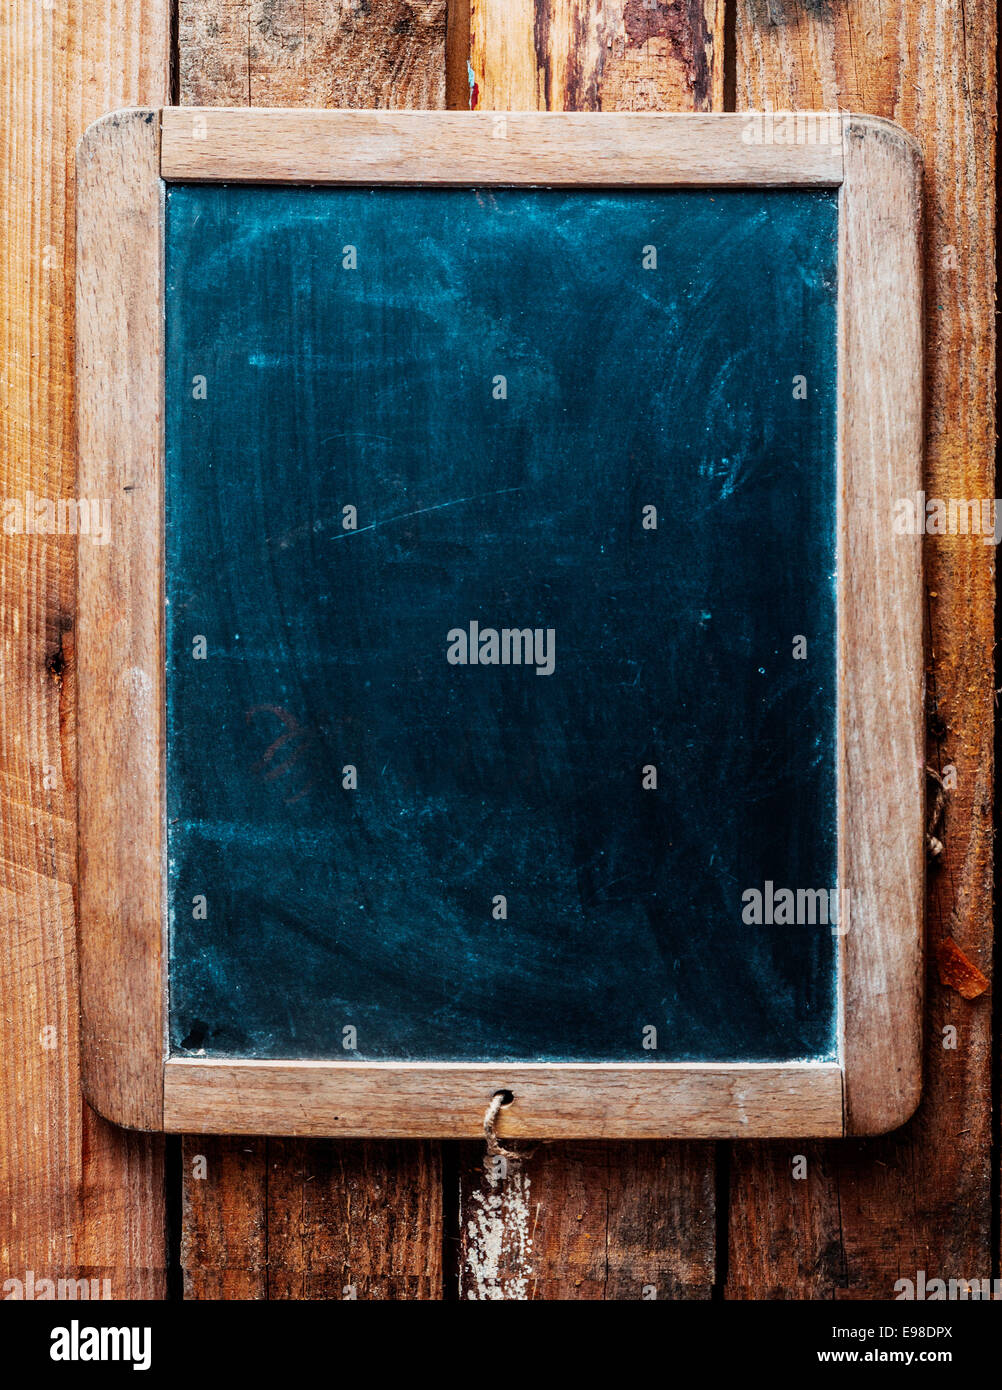 Vintage style wood framed chalkboard over old wood background. Space for insertion of your own text. - Stock Image